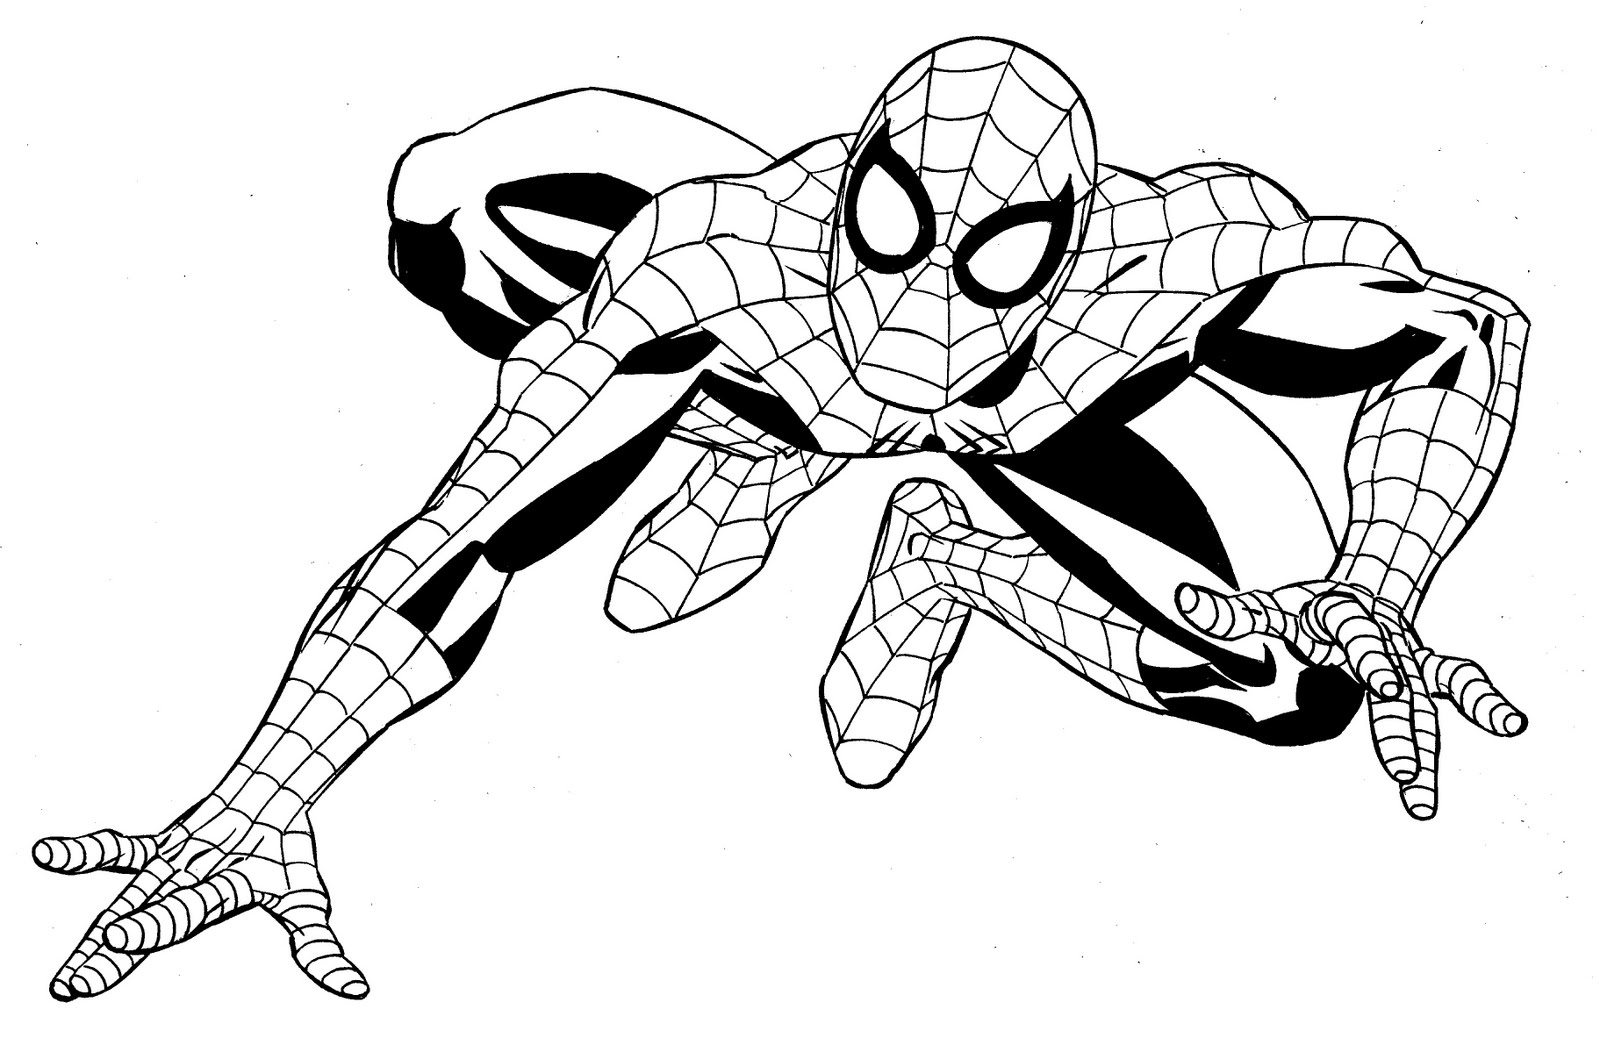 24 Marvel Superhero Coloring Pages Images | FREE COLORING PAGES - Part 3